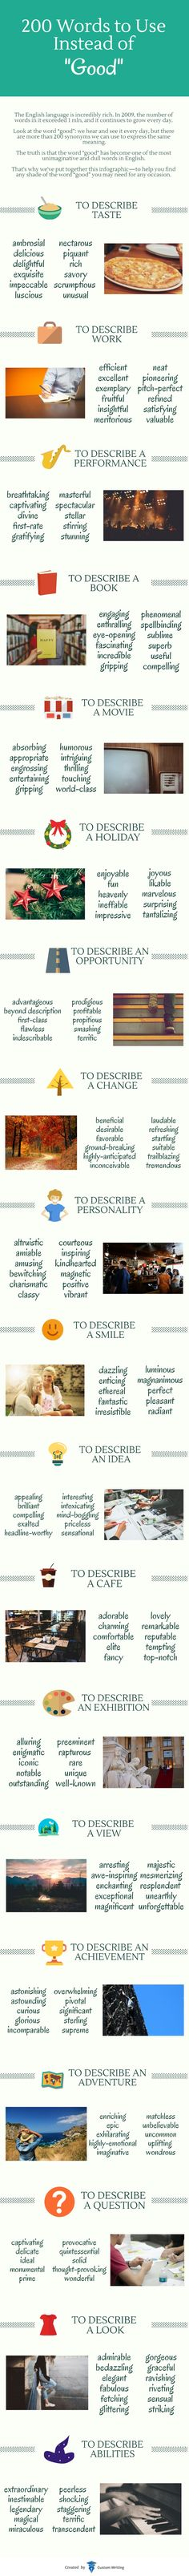 """200 Words to Use Instead of """"Good"""" Infographic - http://elearninginfographics.com/200-words-to-use-instead-of-good/"""